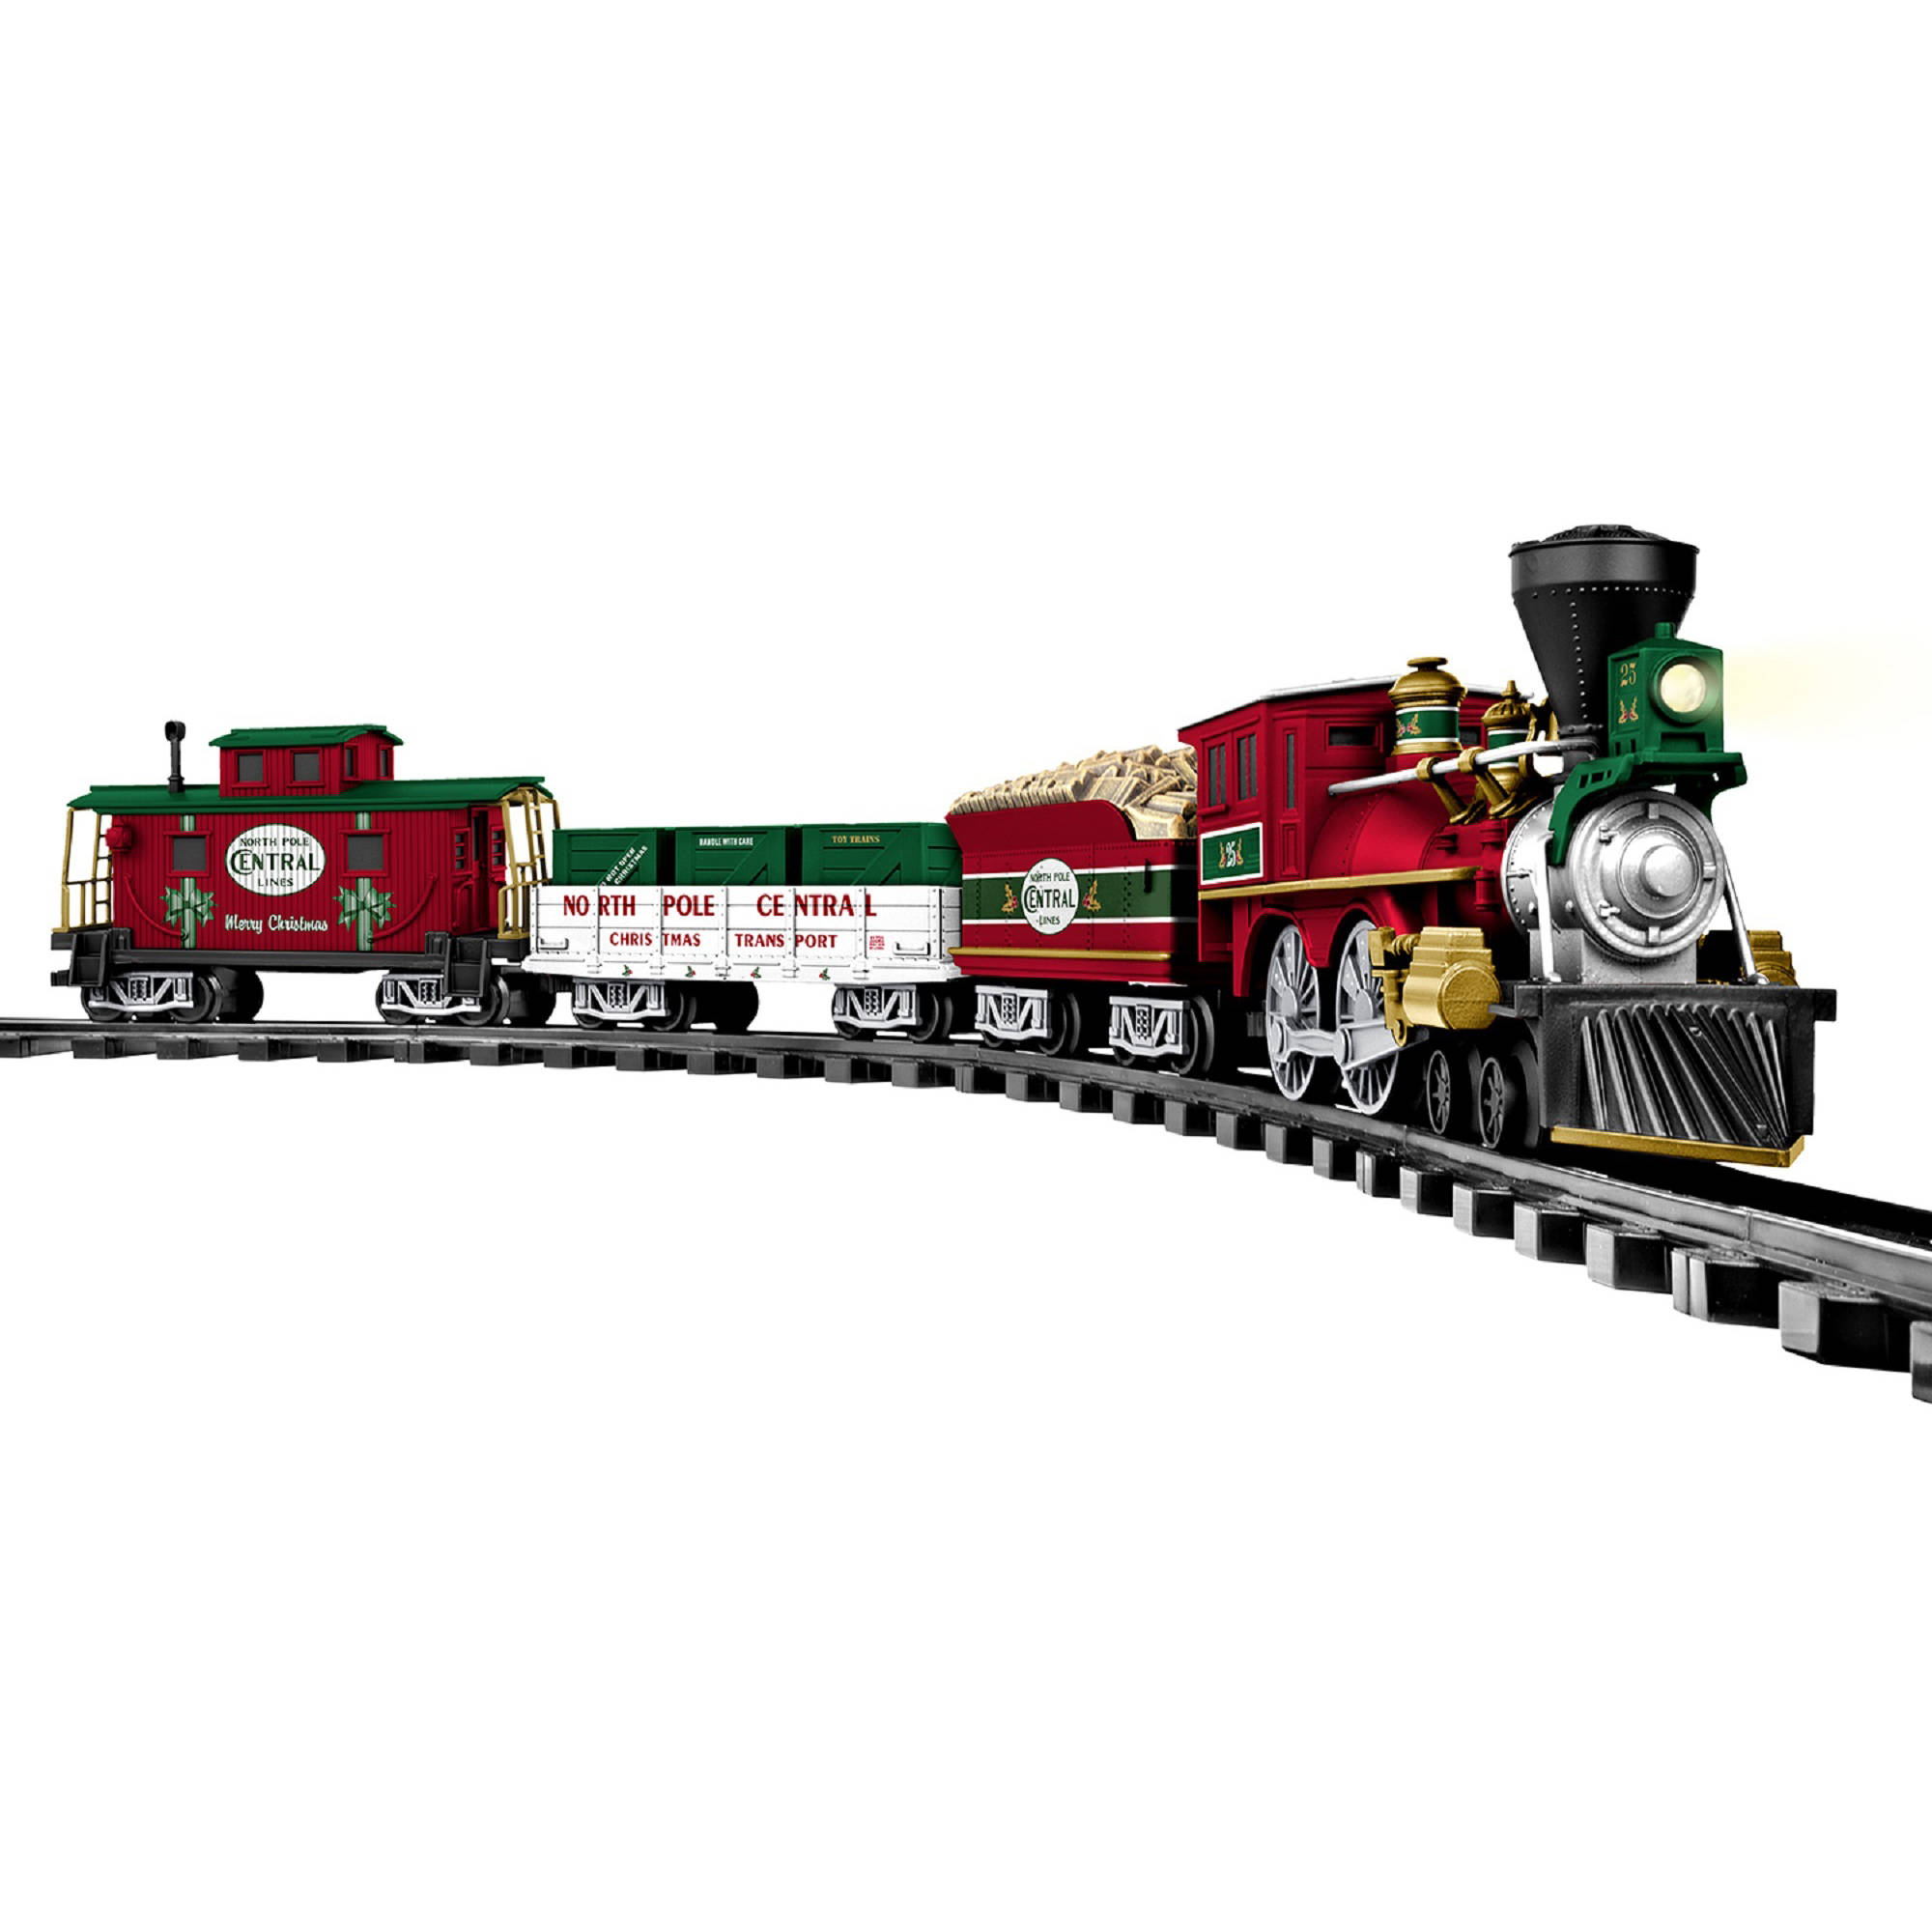 Christmas Train Set.Lionel North Pole Central Battery Powered Model Train Set Ready To Play With Remote